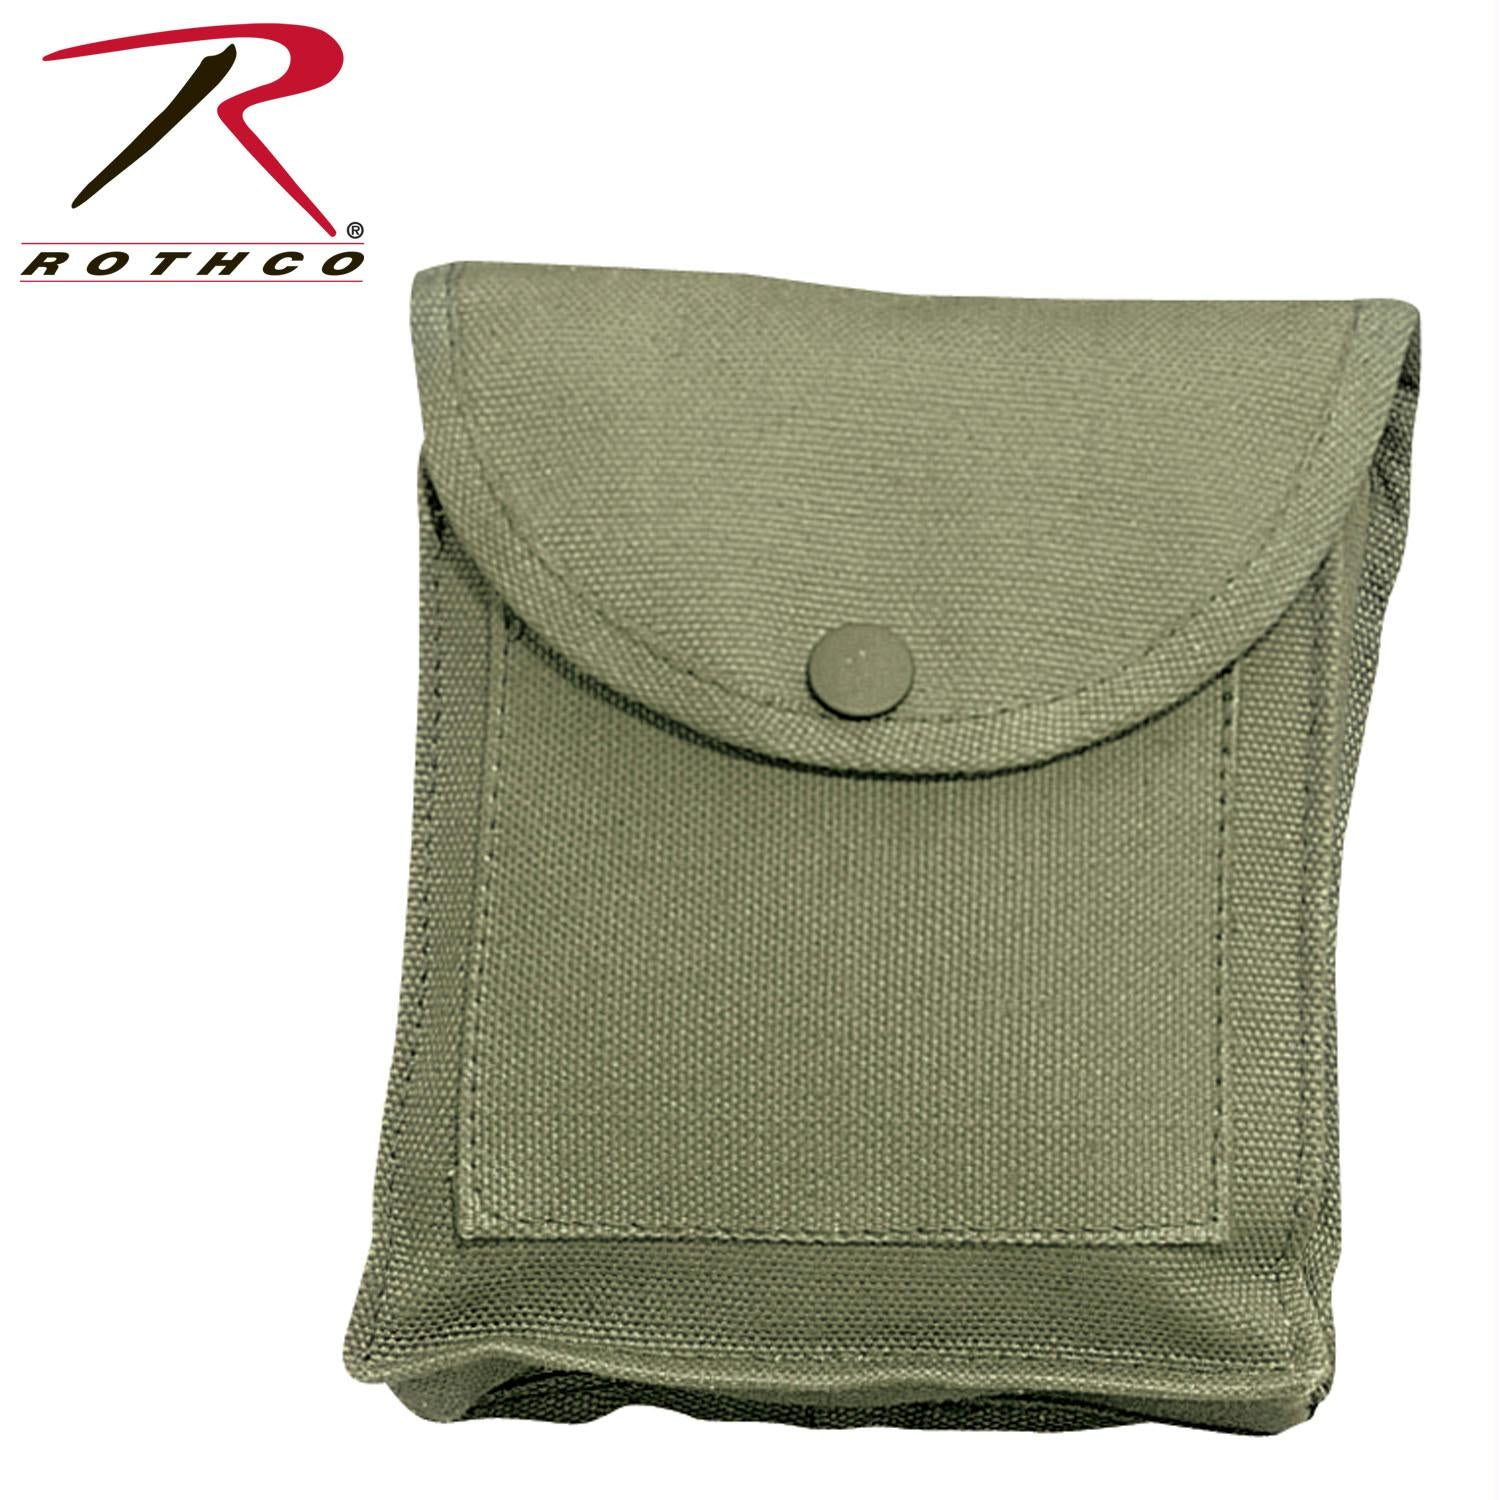 Rothco Canvas Utility Pouches - Olive Drab